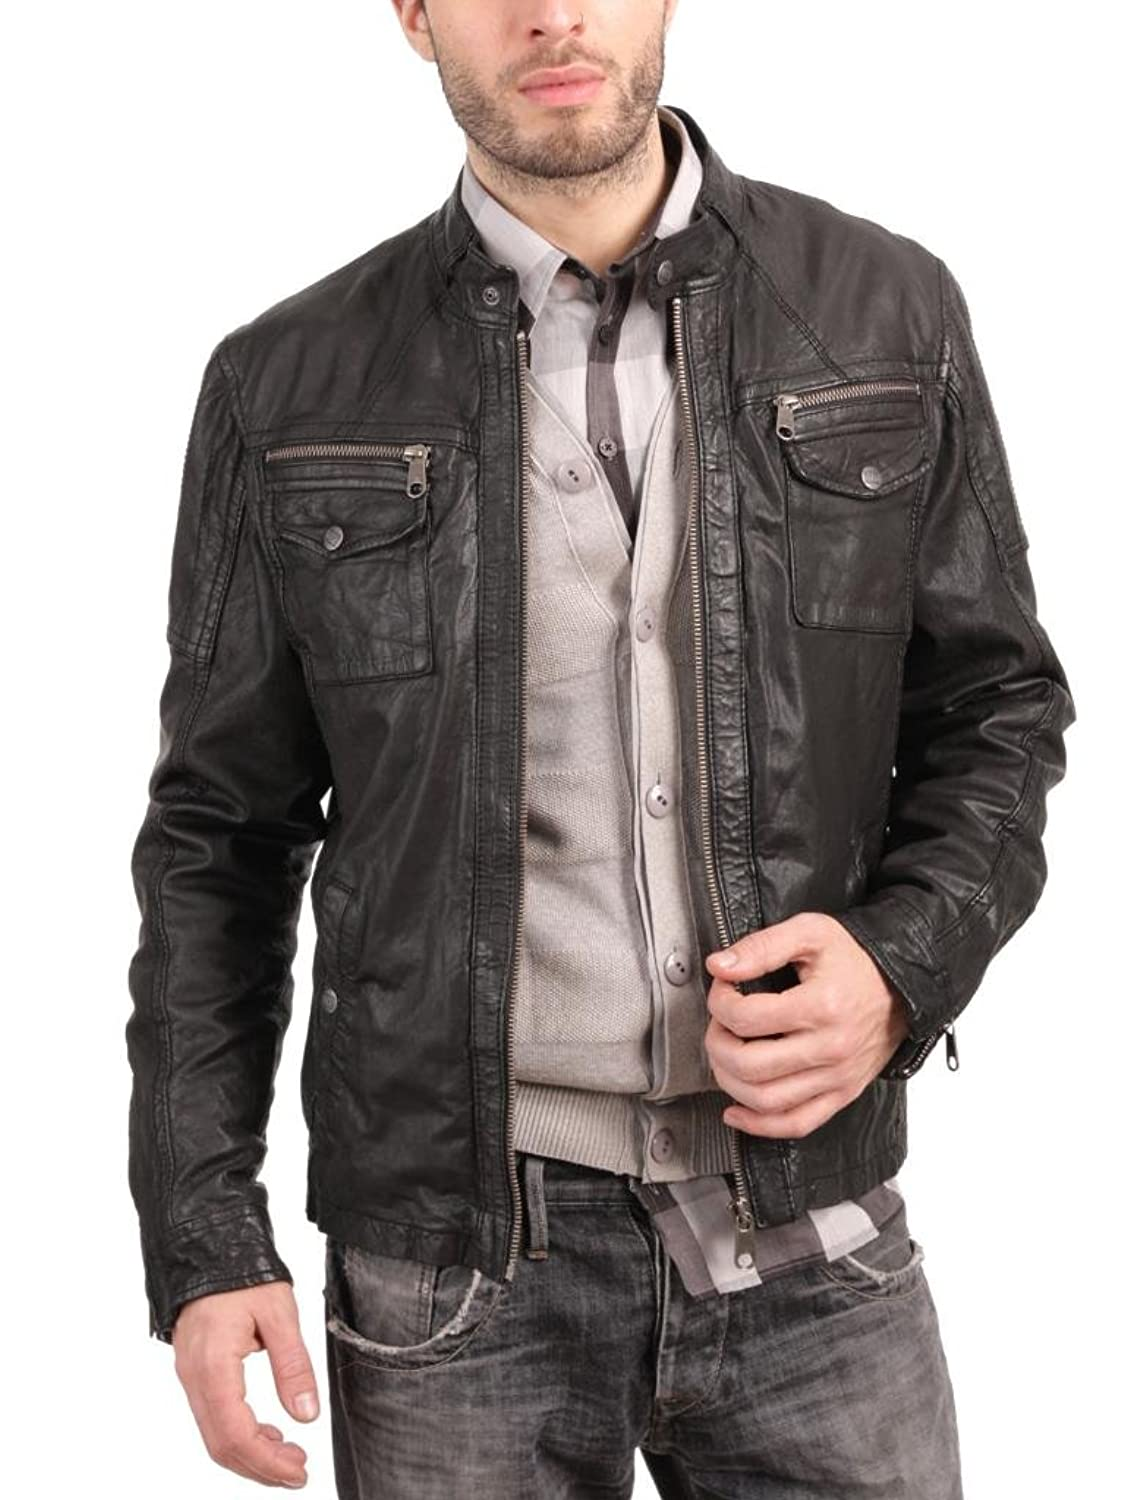 Men Leather Jacket Biker Motorcycle Coat Slim Fit Outwear Jackets AUK022